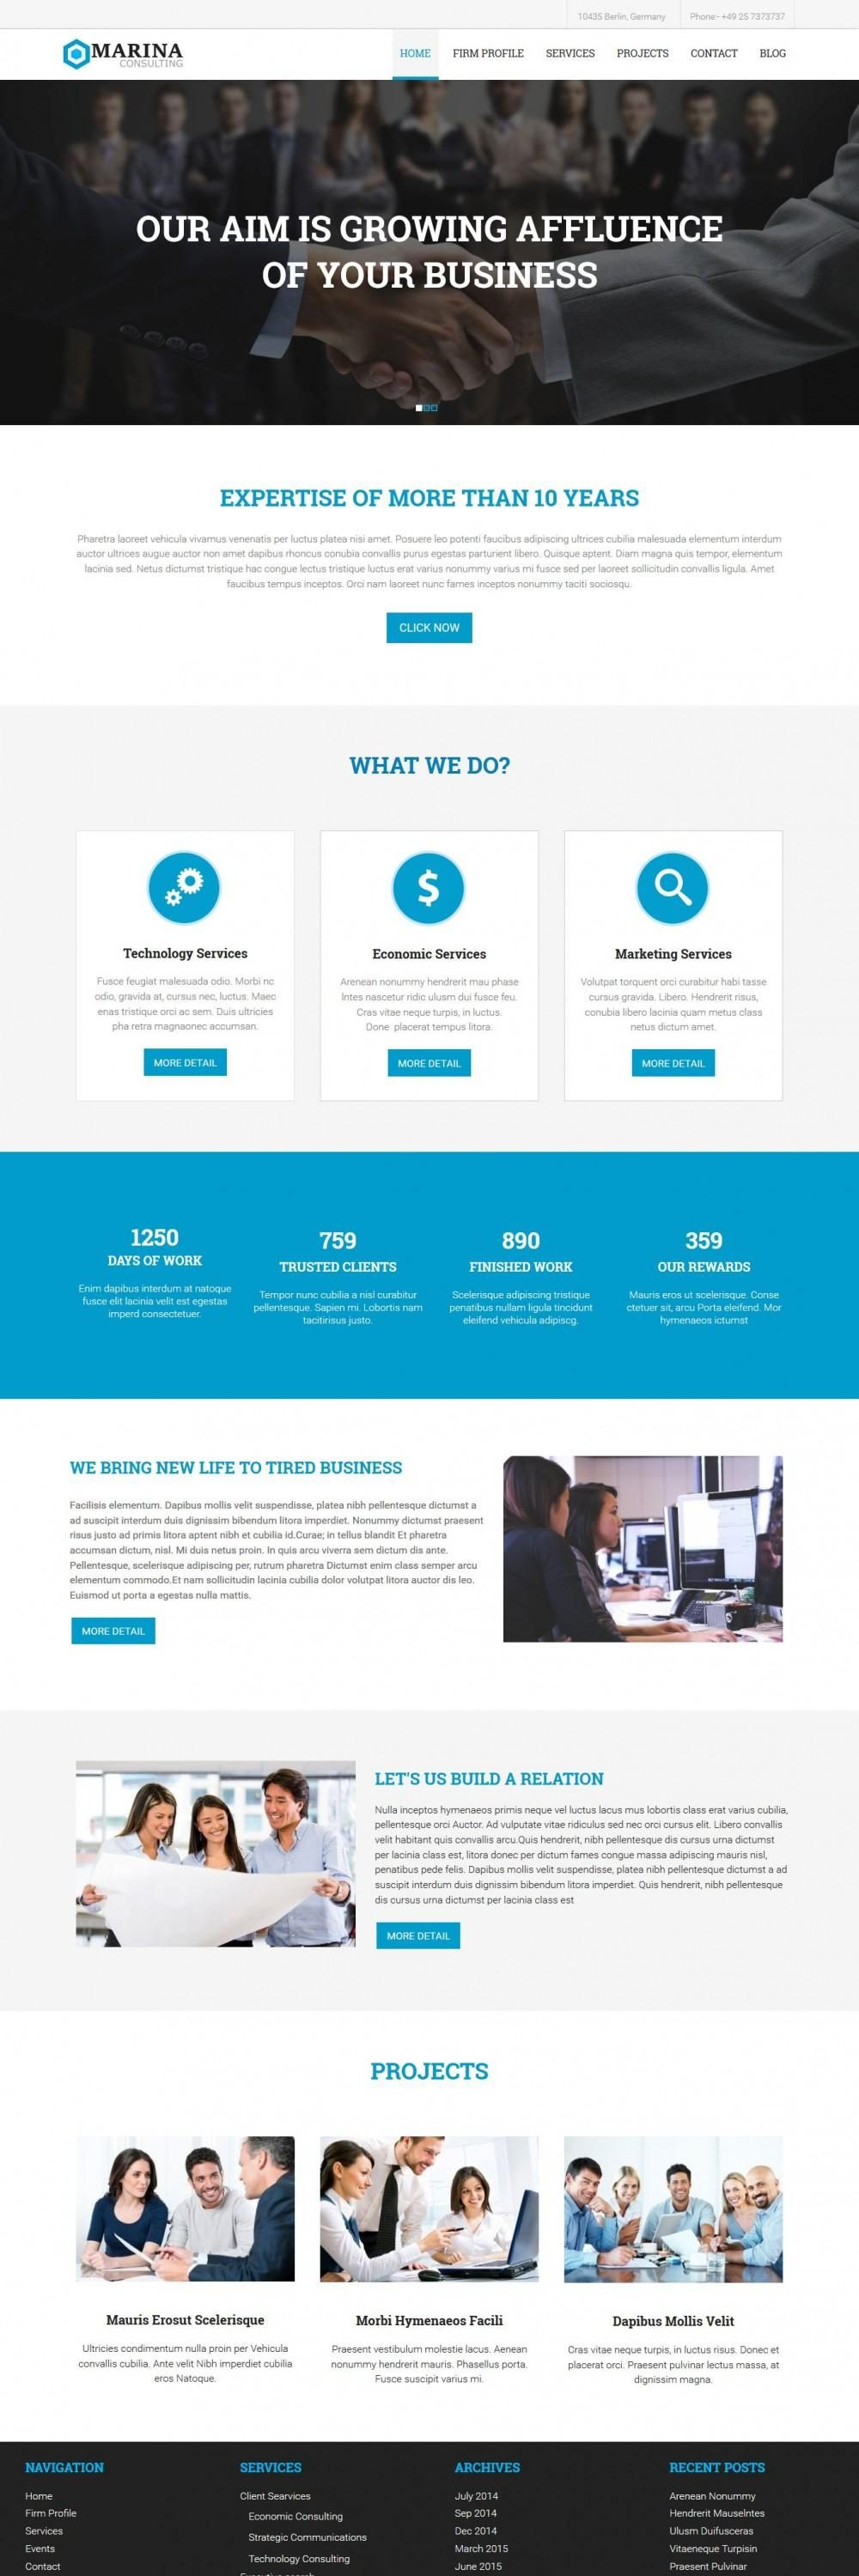 marina business marketing consultancy html template